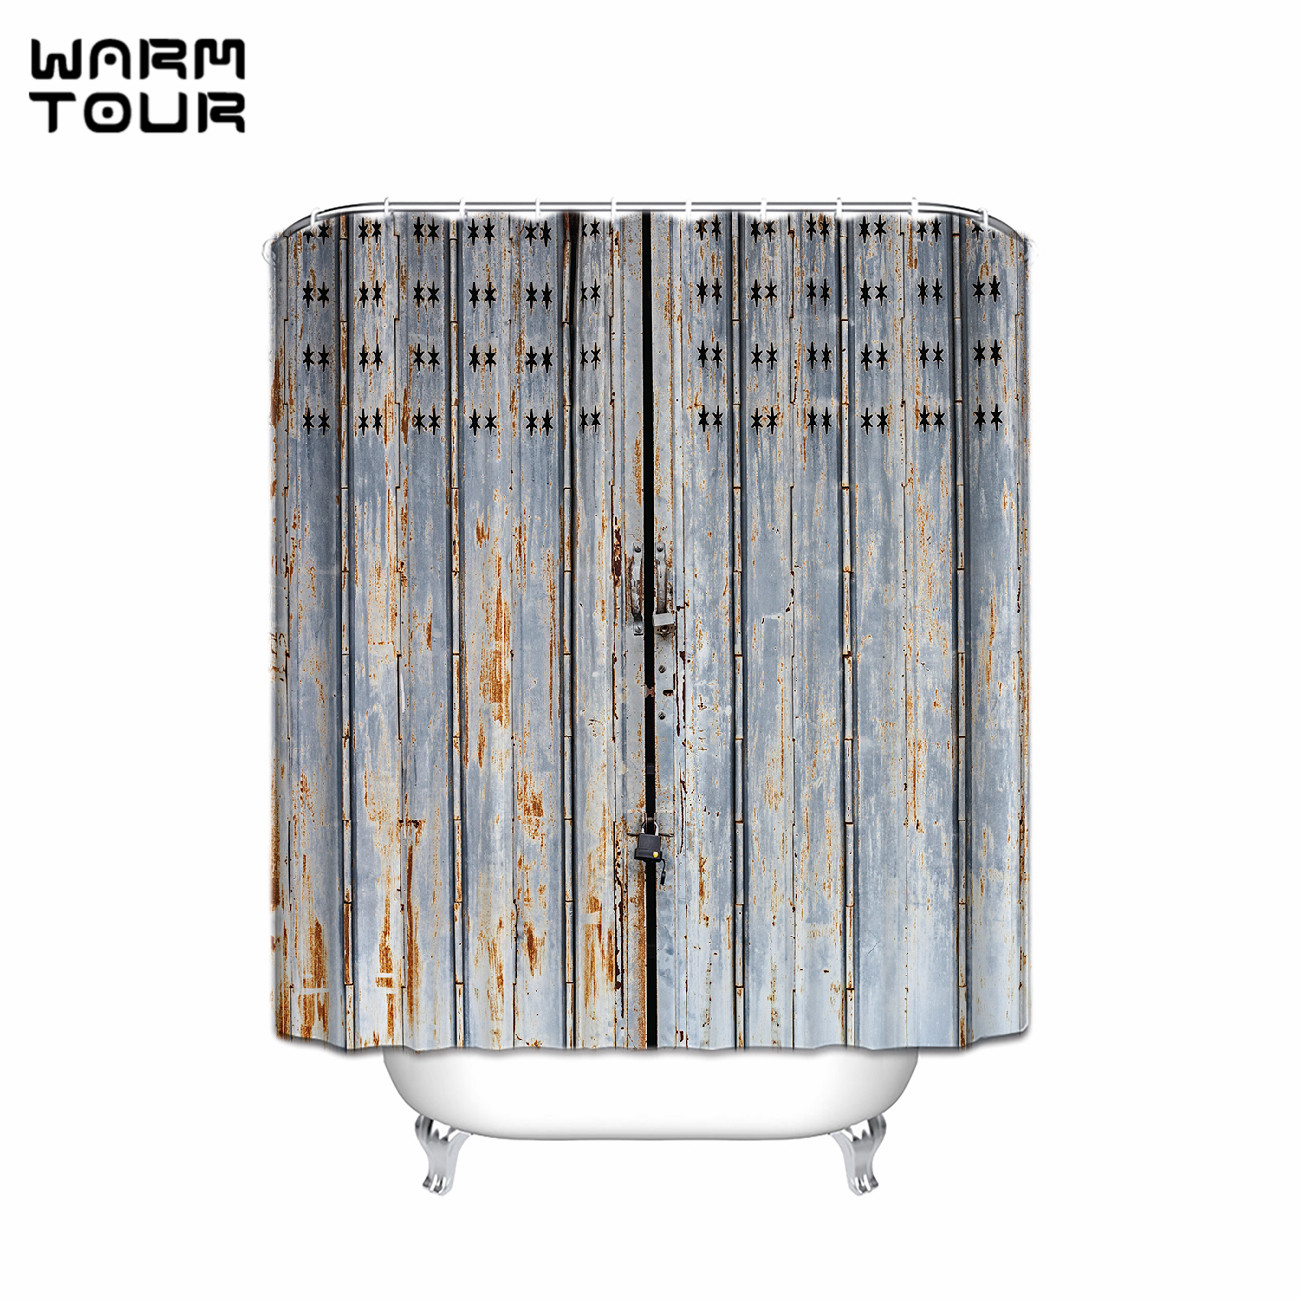 Country Shower Curtains For The Bathroom - Warm tour old bronze wooden garage door vintage rustic shower curtain american country style bathroom decor